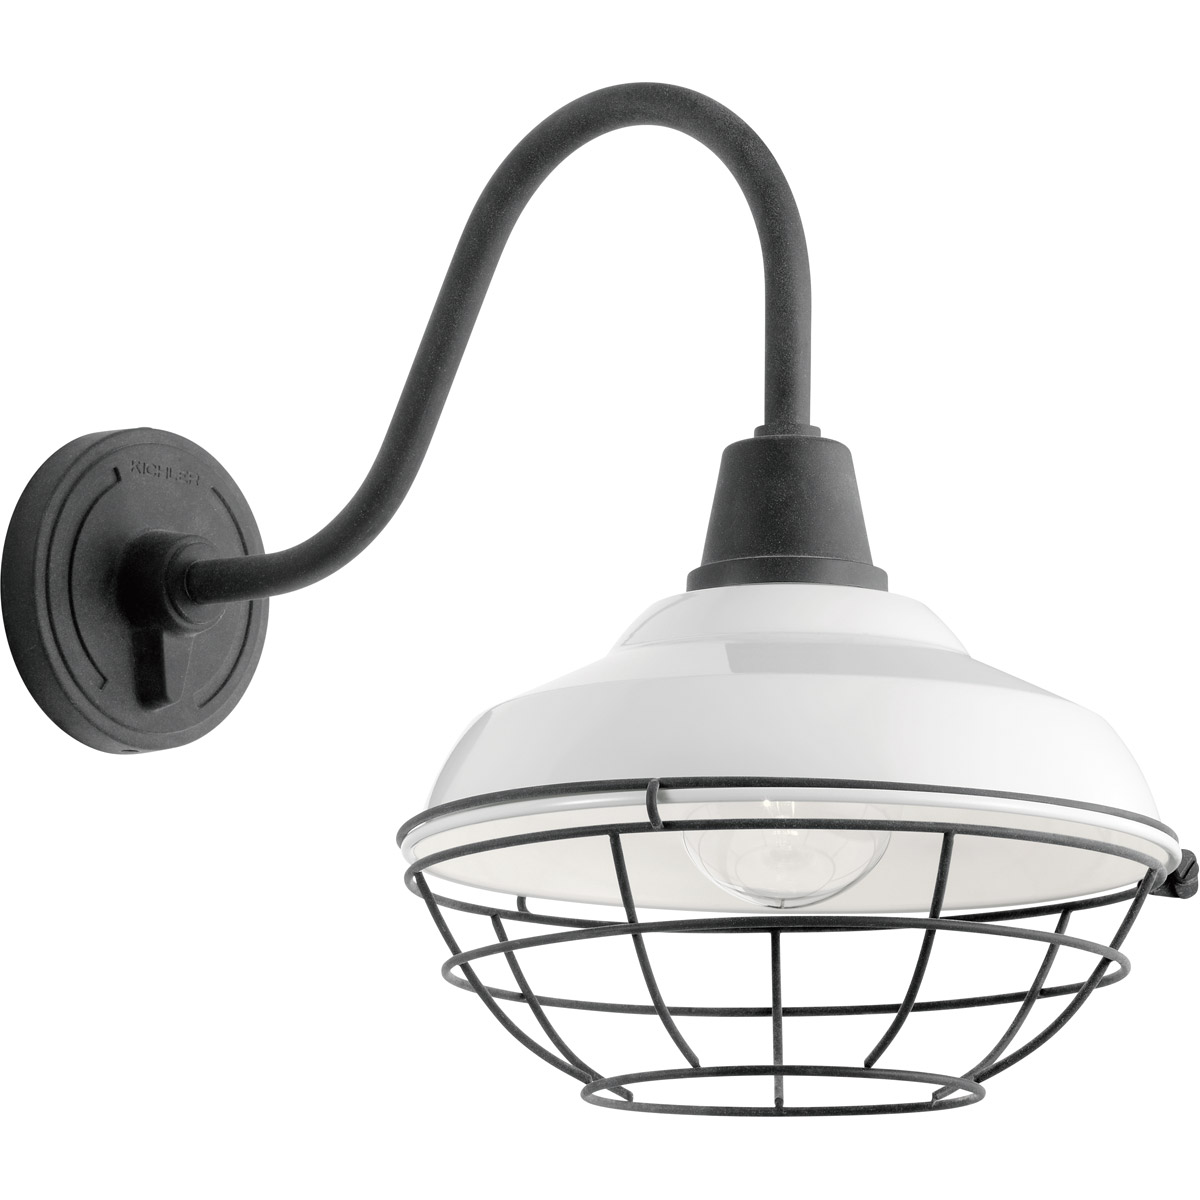 Details about kichler lighting 49990wh pier 1 light 16 inch white outdoor wall light x large